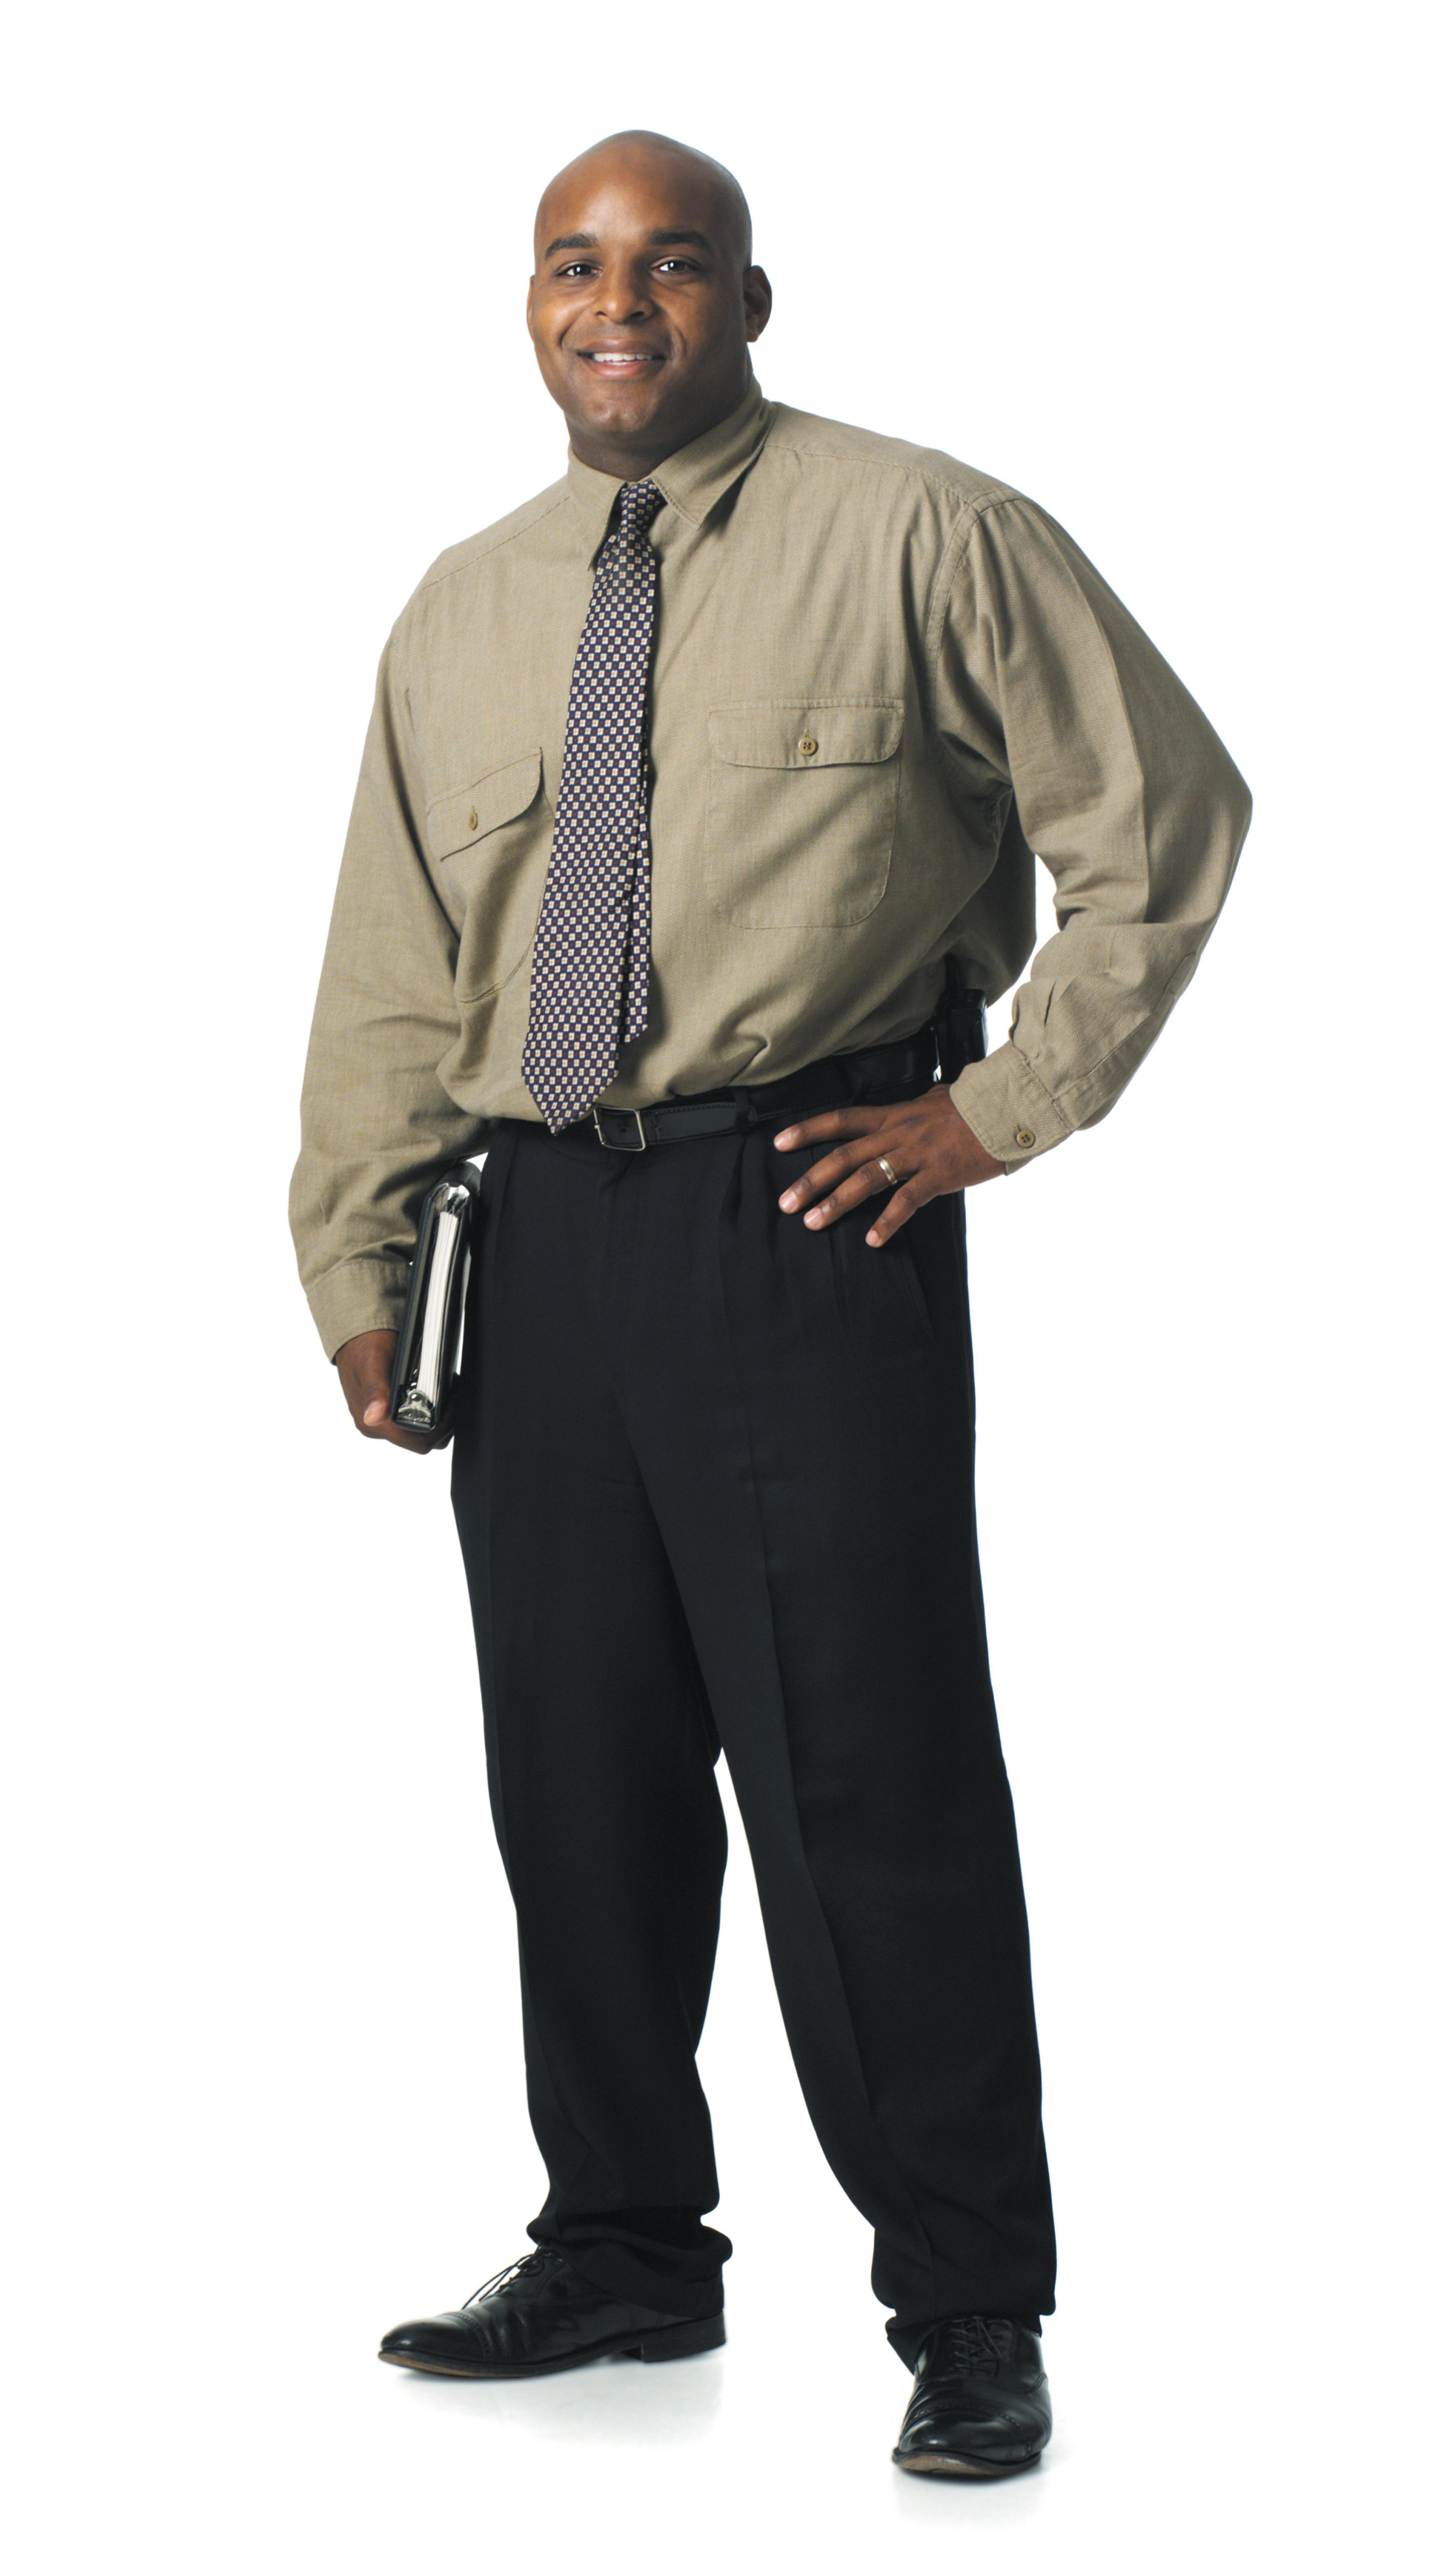 a young african american business man in a shirt and a tie smiles at the camera